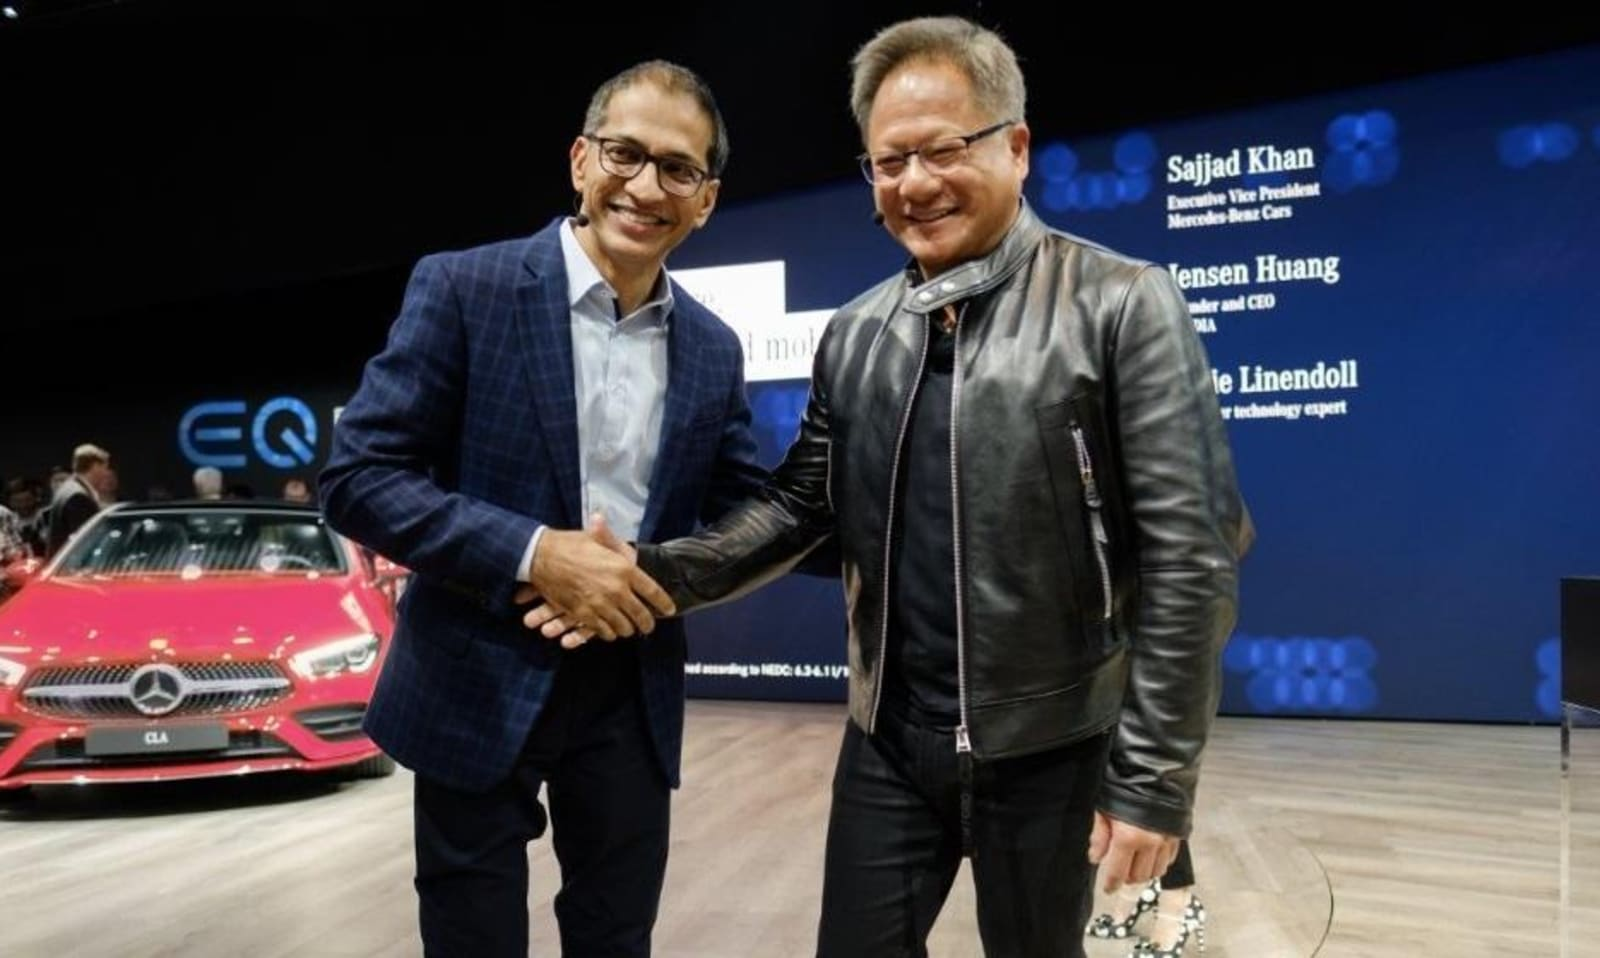 Mercedes and NVIDIA team up to build next-gen AI vehicles